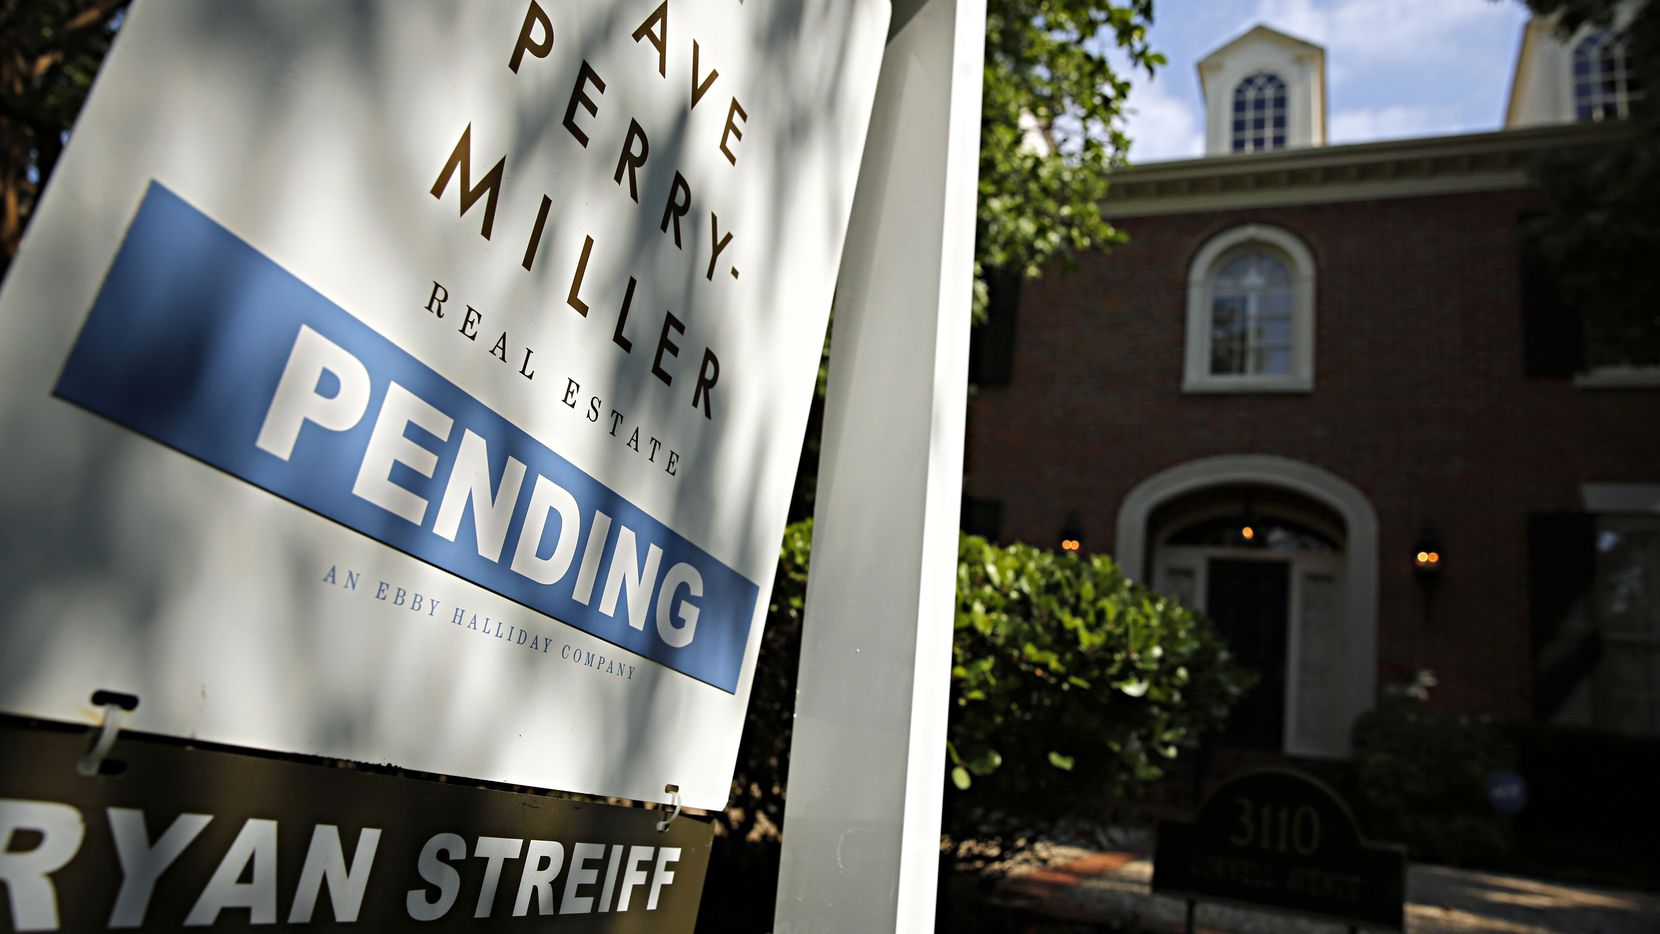 Dallas-area home prices were up only 5.6 percent in the latest S&P/Case-Shiller Home Price Index.